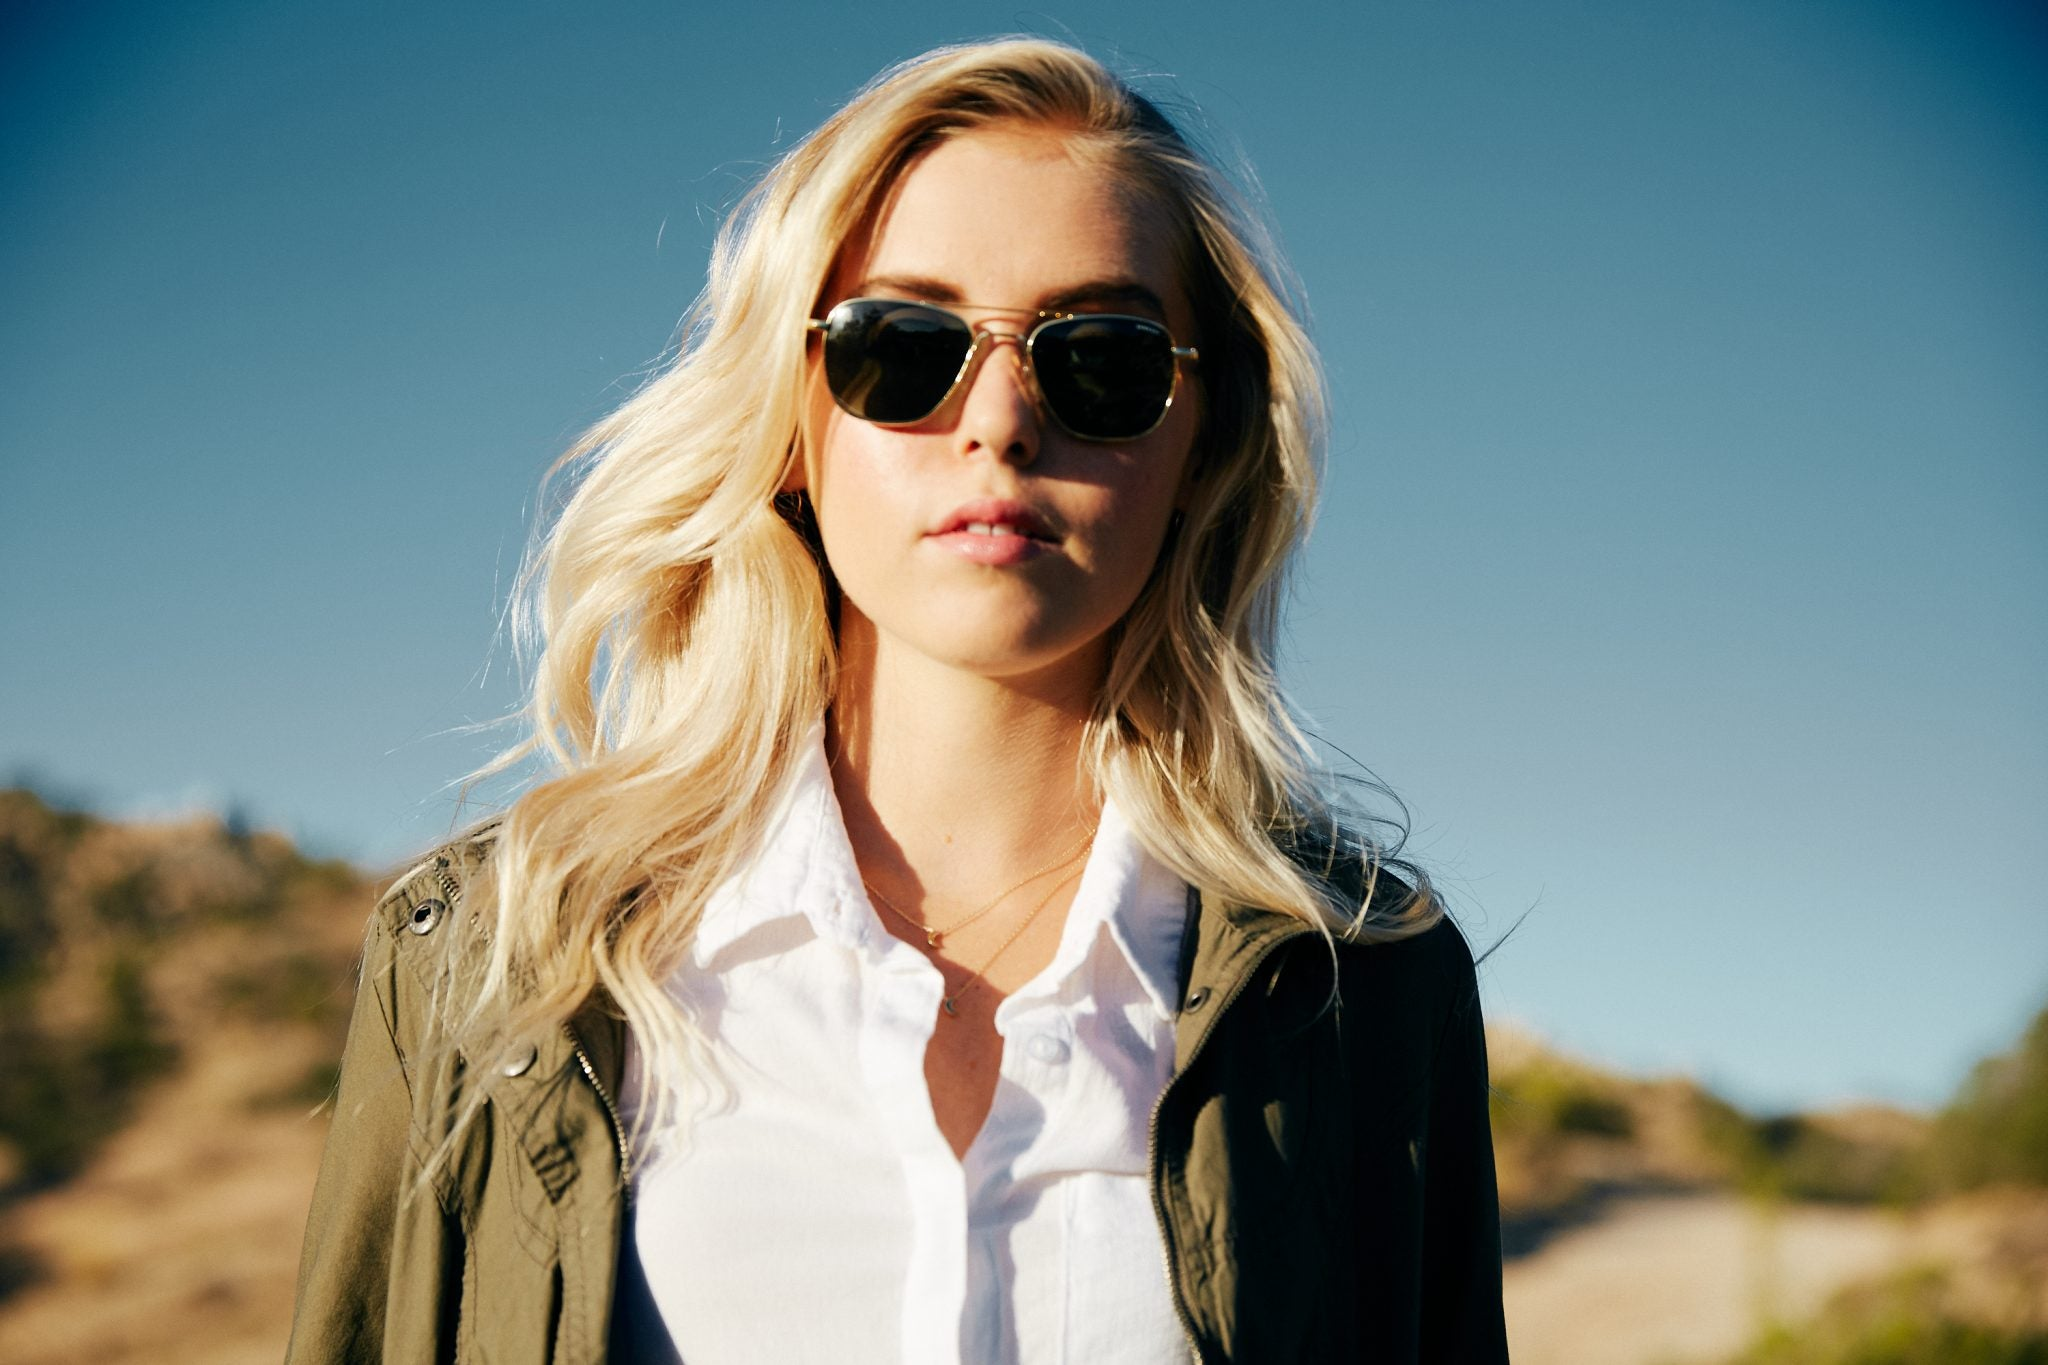 Wear aviators with jackets, solid colors and minimal jewelry for women. | Randolph Engineering